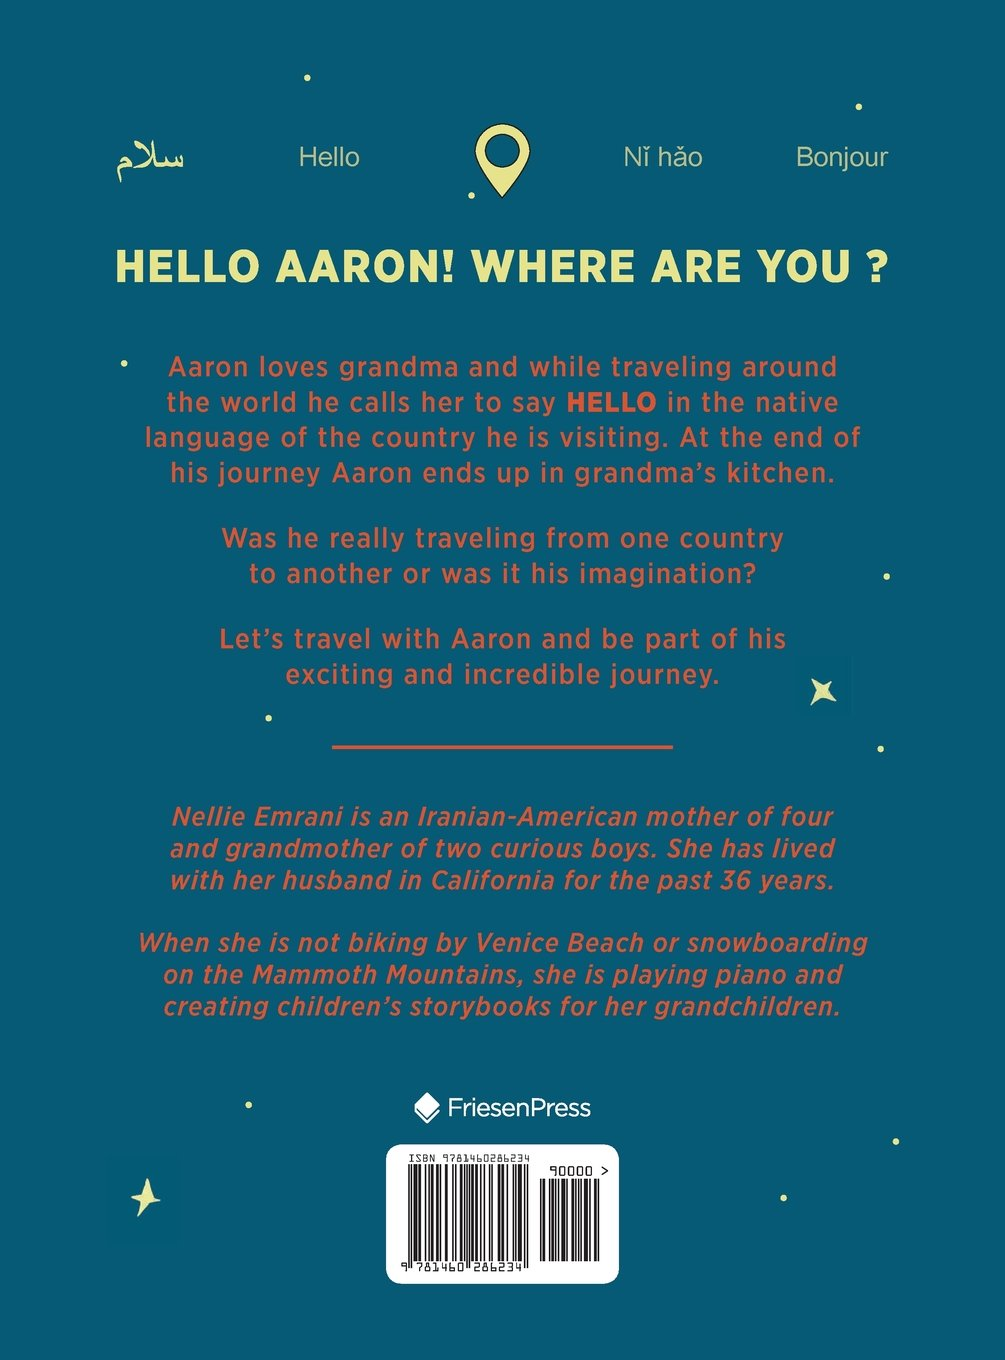 Hello Aaron! Where are you? by FriesenPress